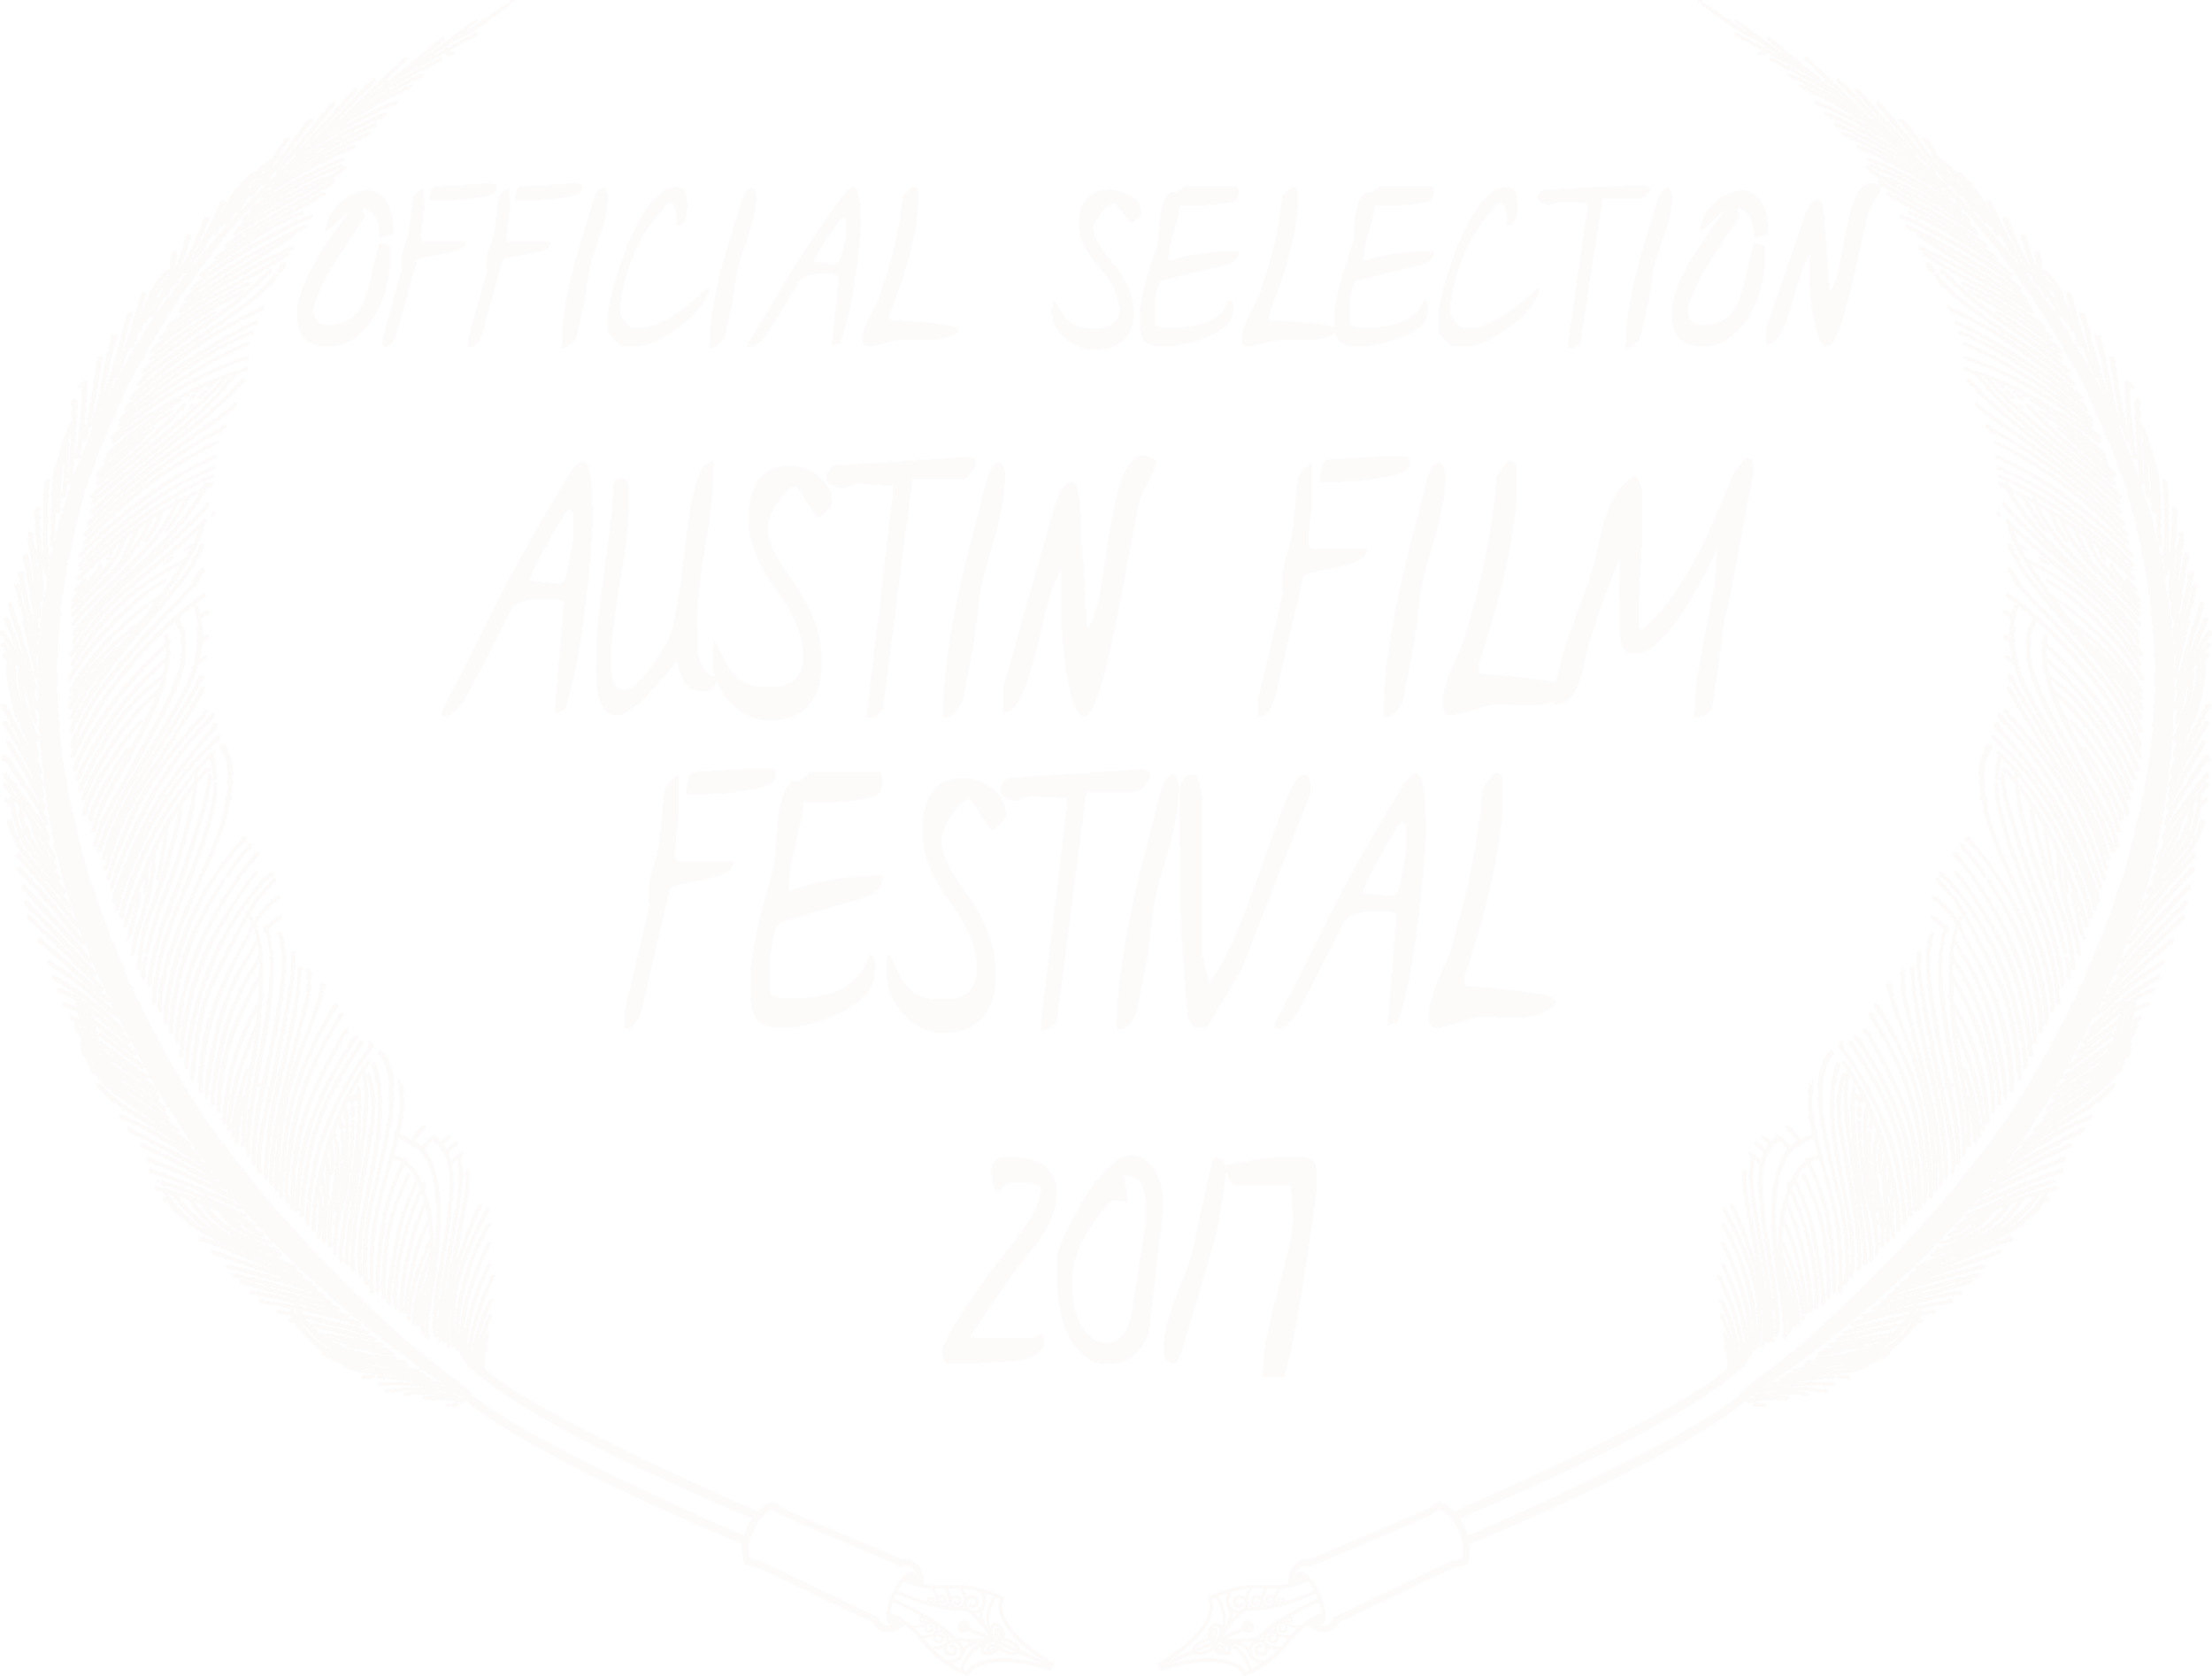 Austin Film Festival - October 28th, 2017 6:00 PM Alamo Drafthouse VillageOctober 30th, 2017 10:15 PM Galaxy Highland screen 8Link to article in Deadline Hollywood